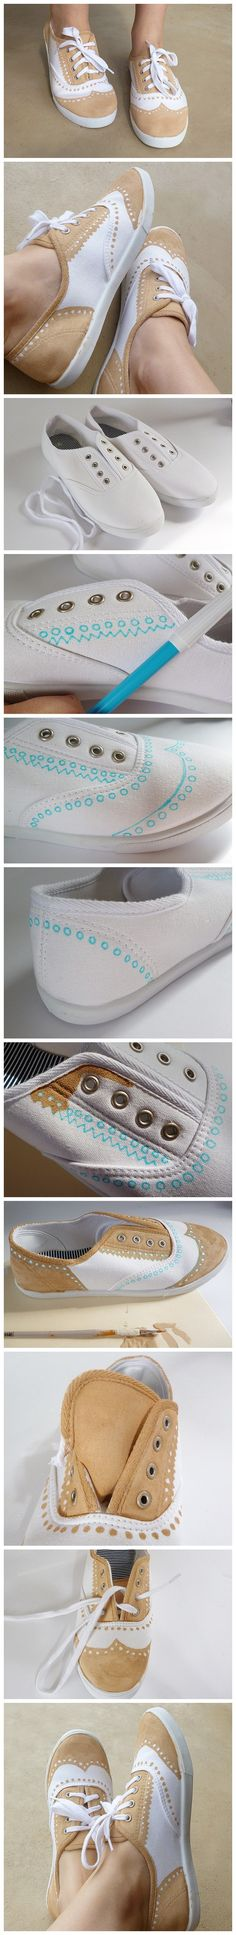 DIY oxfords-- what an awesome idea!